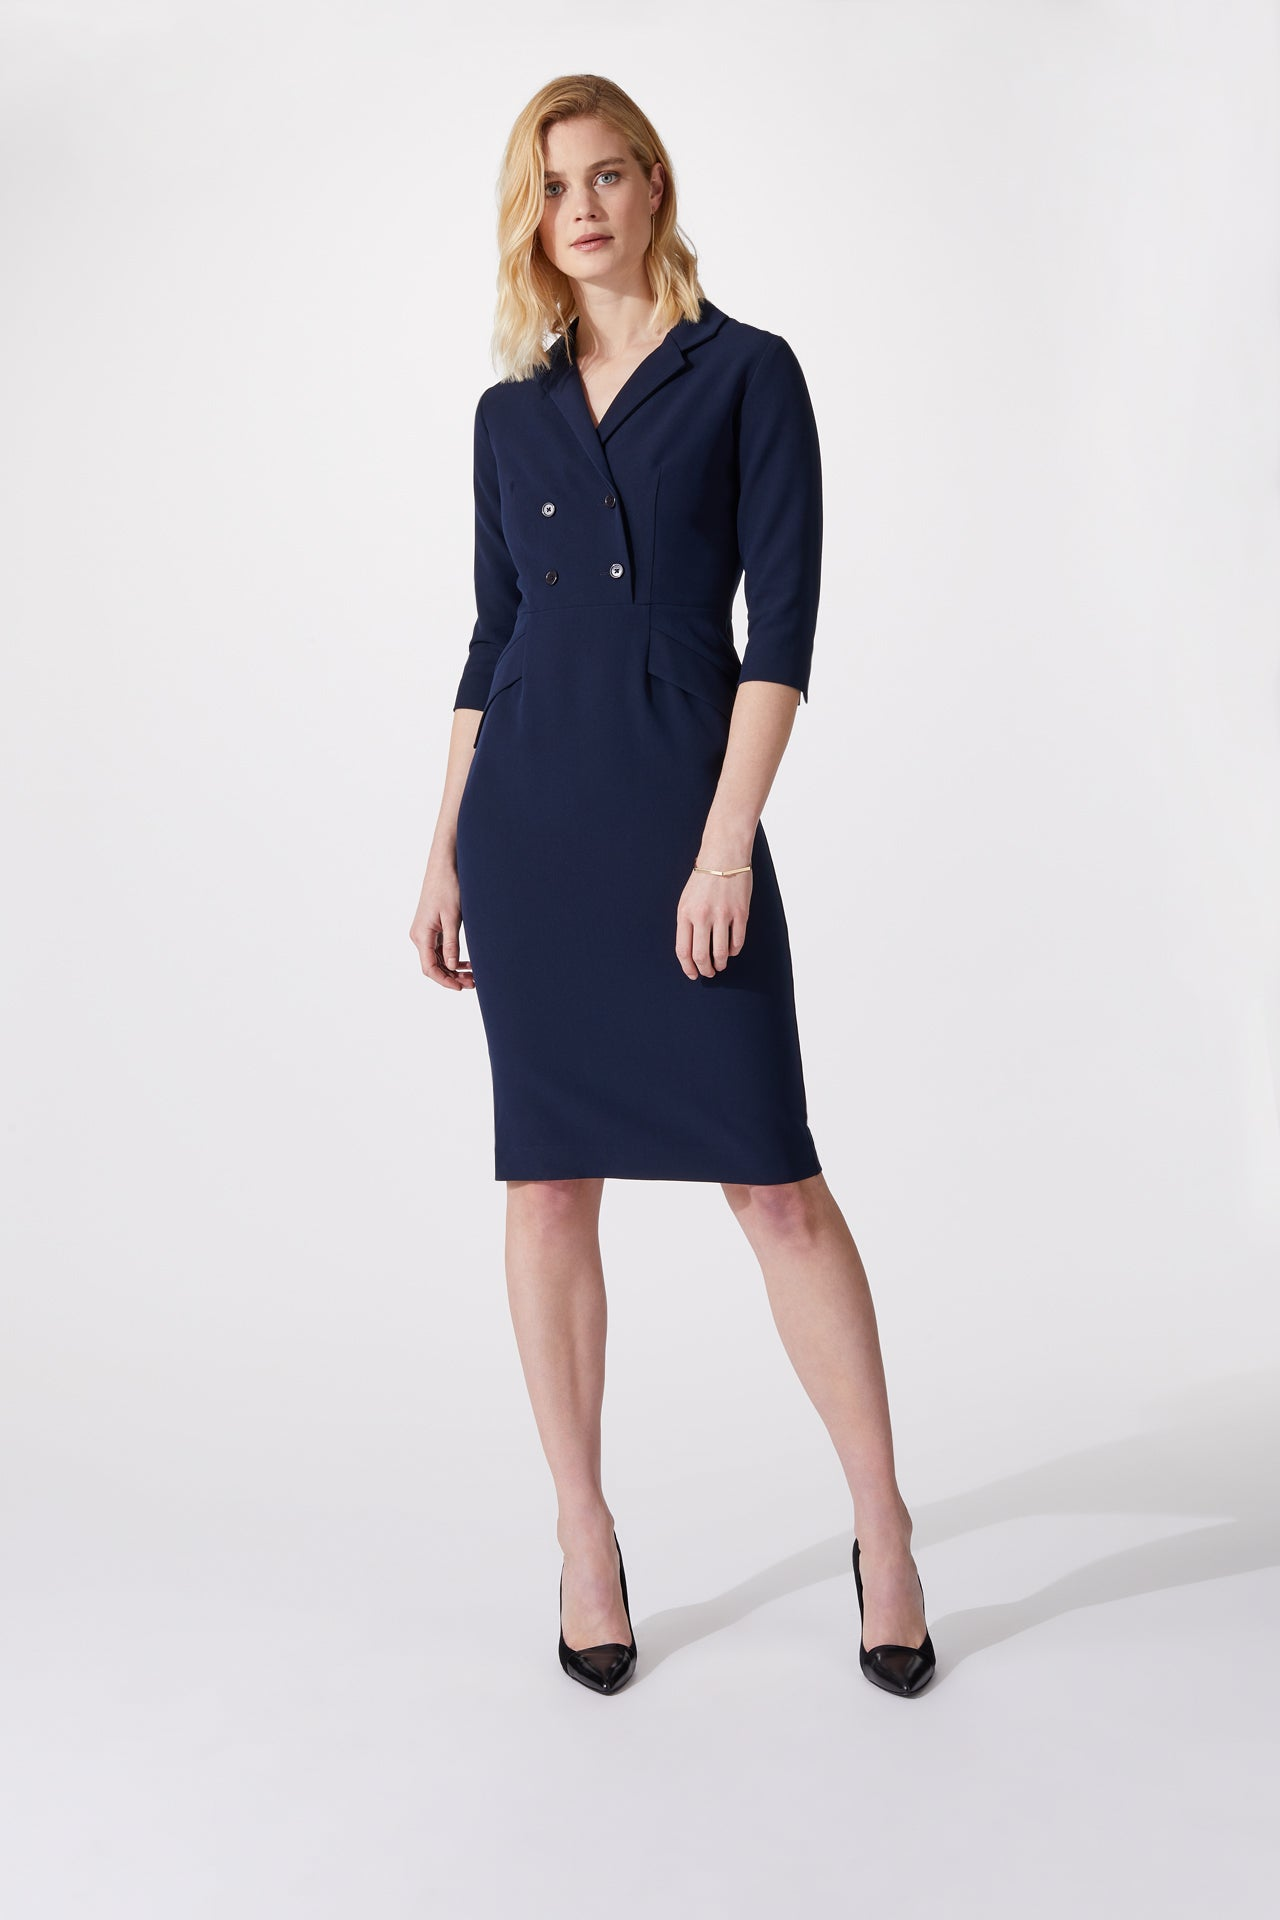 Oxford Navy Dress